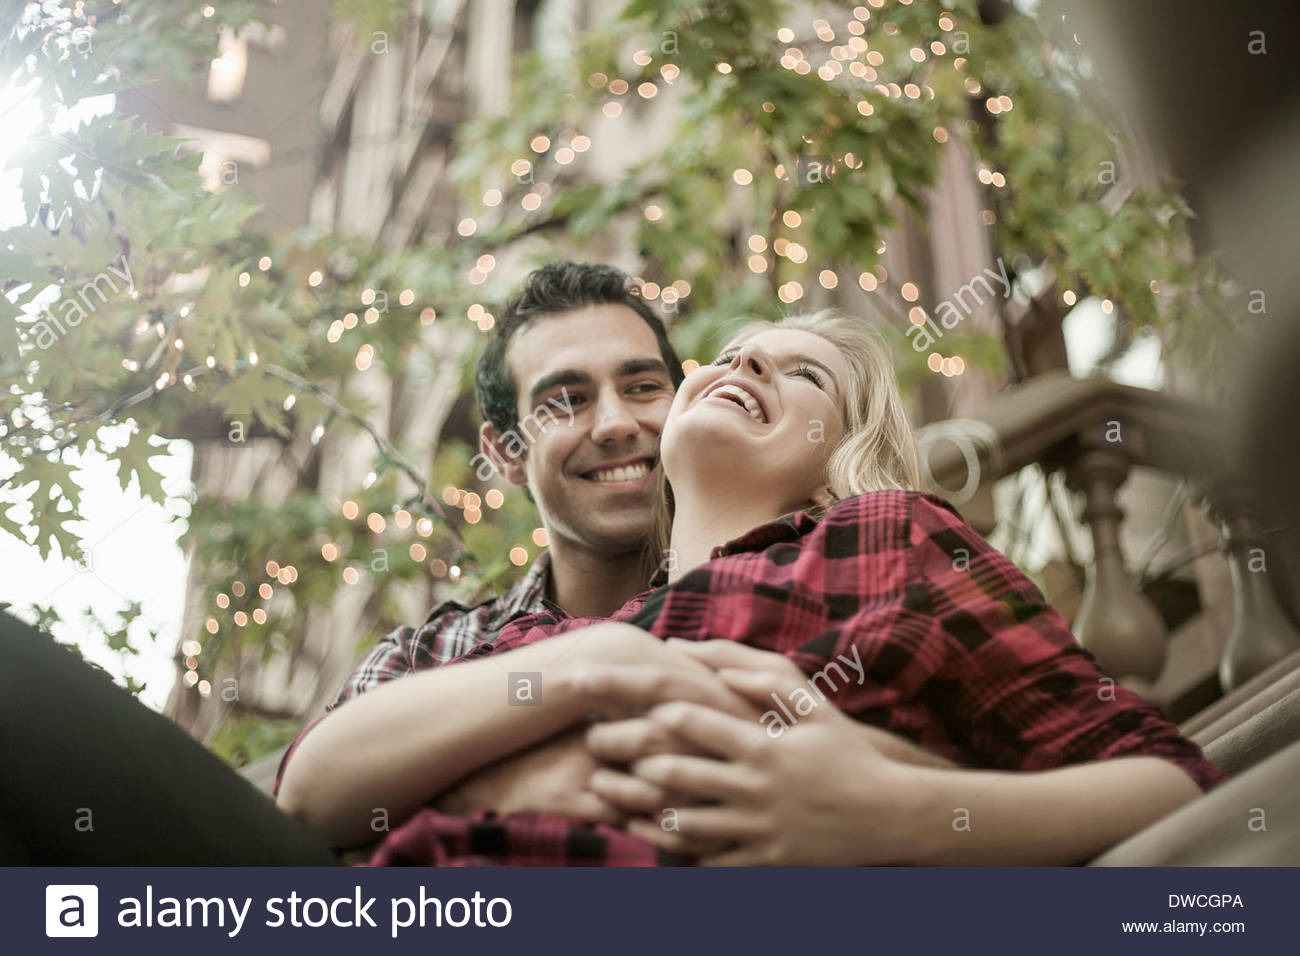 Romantic young couple sitting on steps - Stock Image